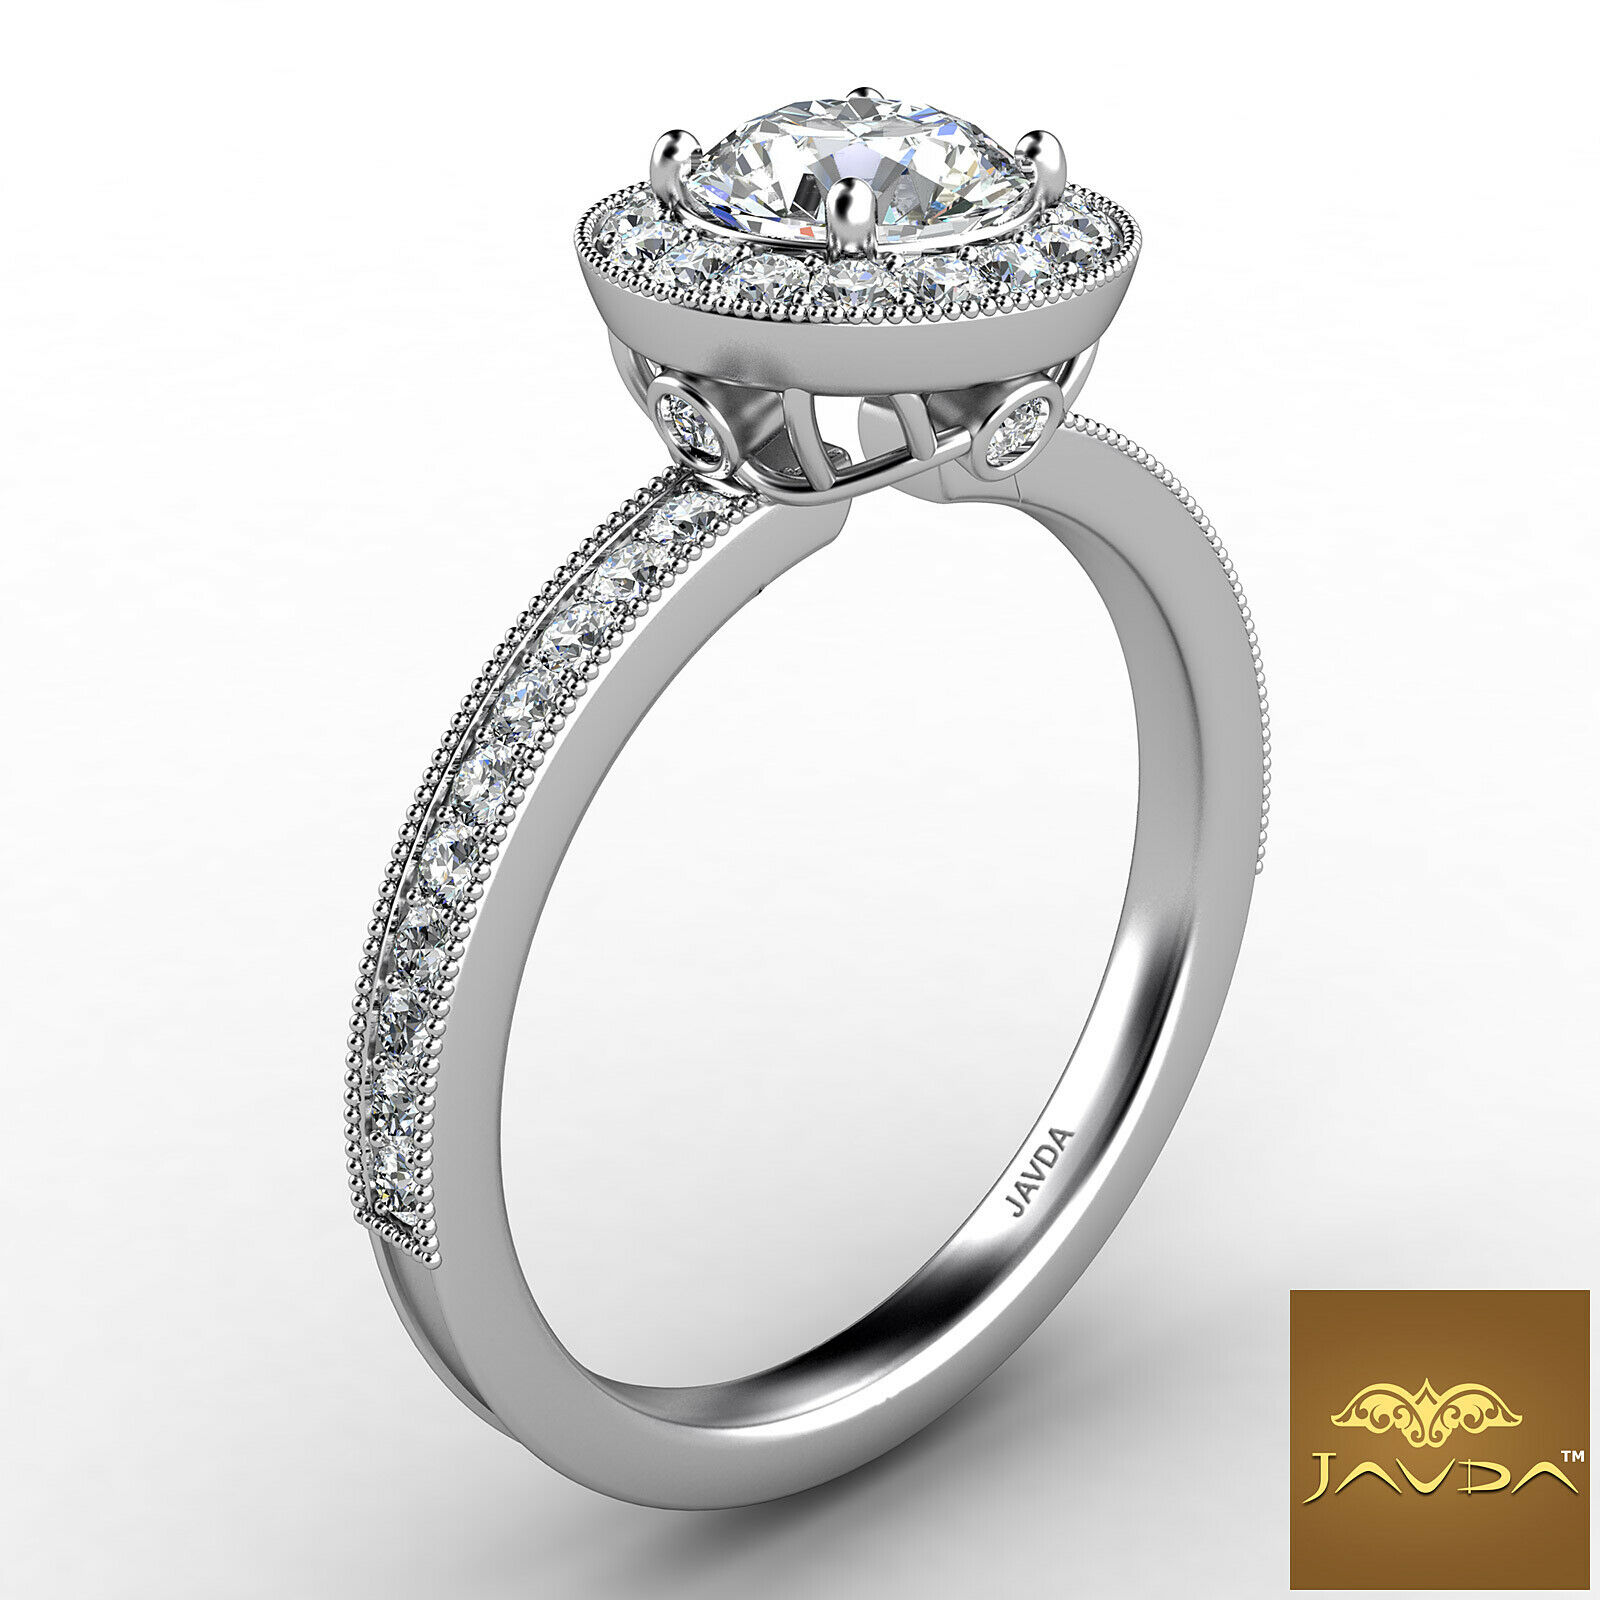 0.9ctw Halo Milgrain Sidestone Round Diamond Engagement Ring GIA F-VVS2 W Gold 2